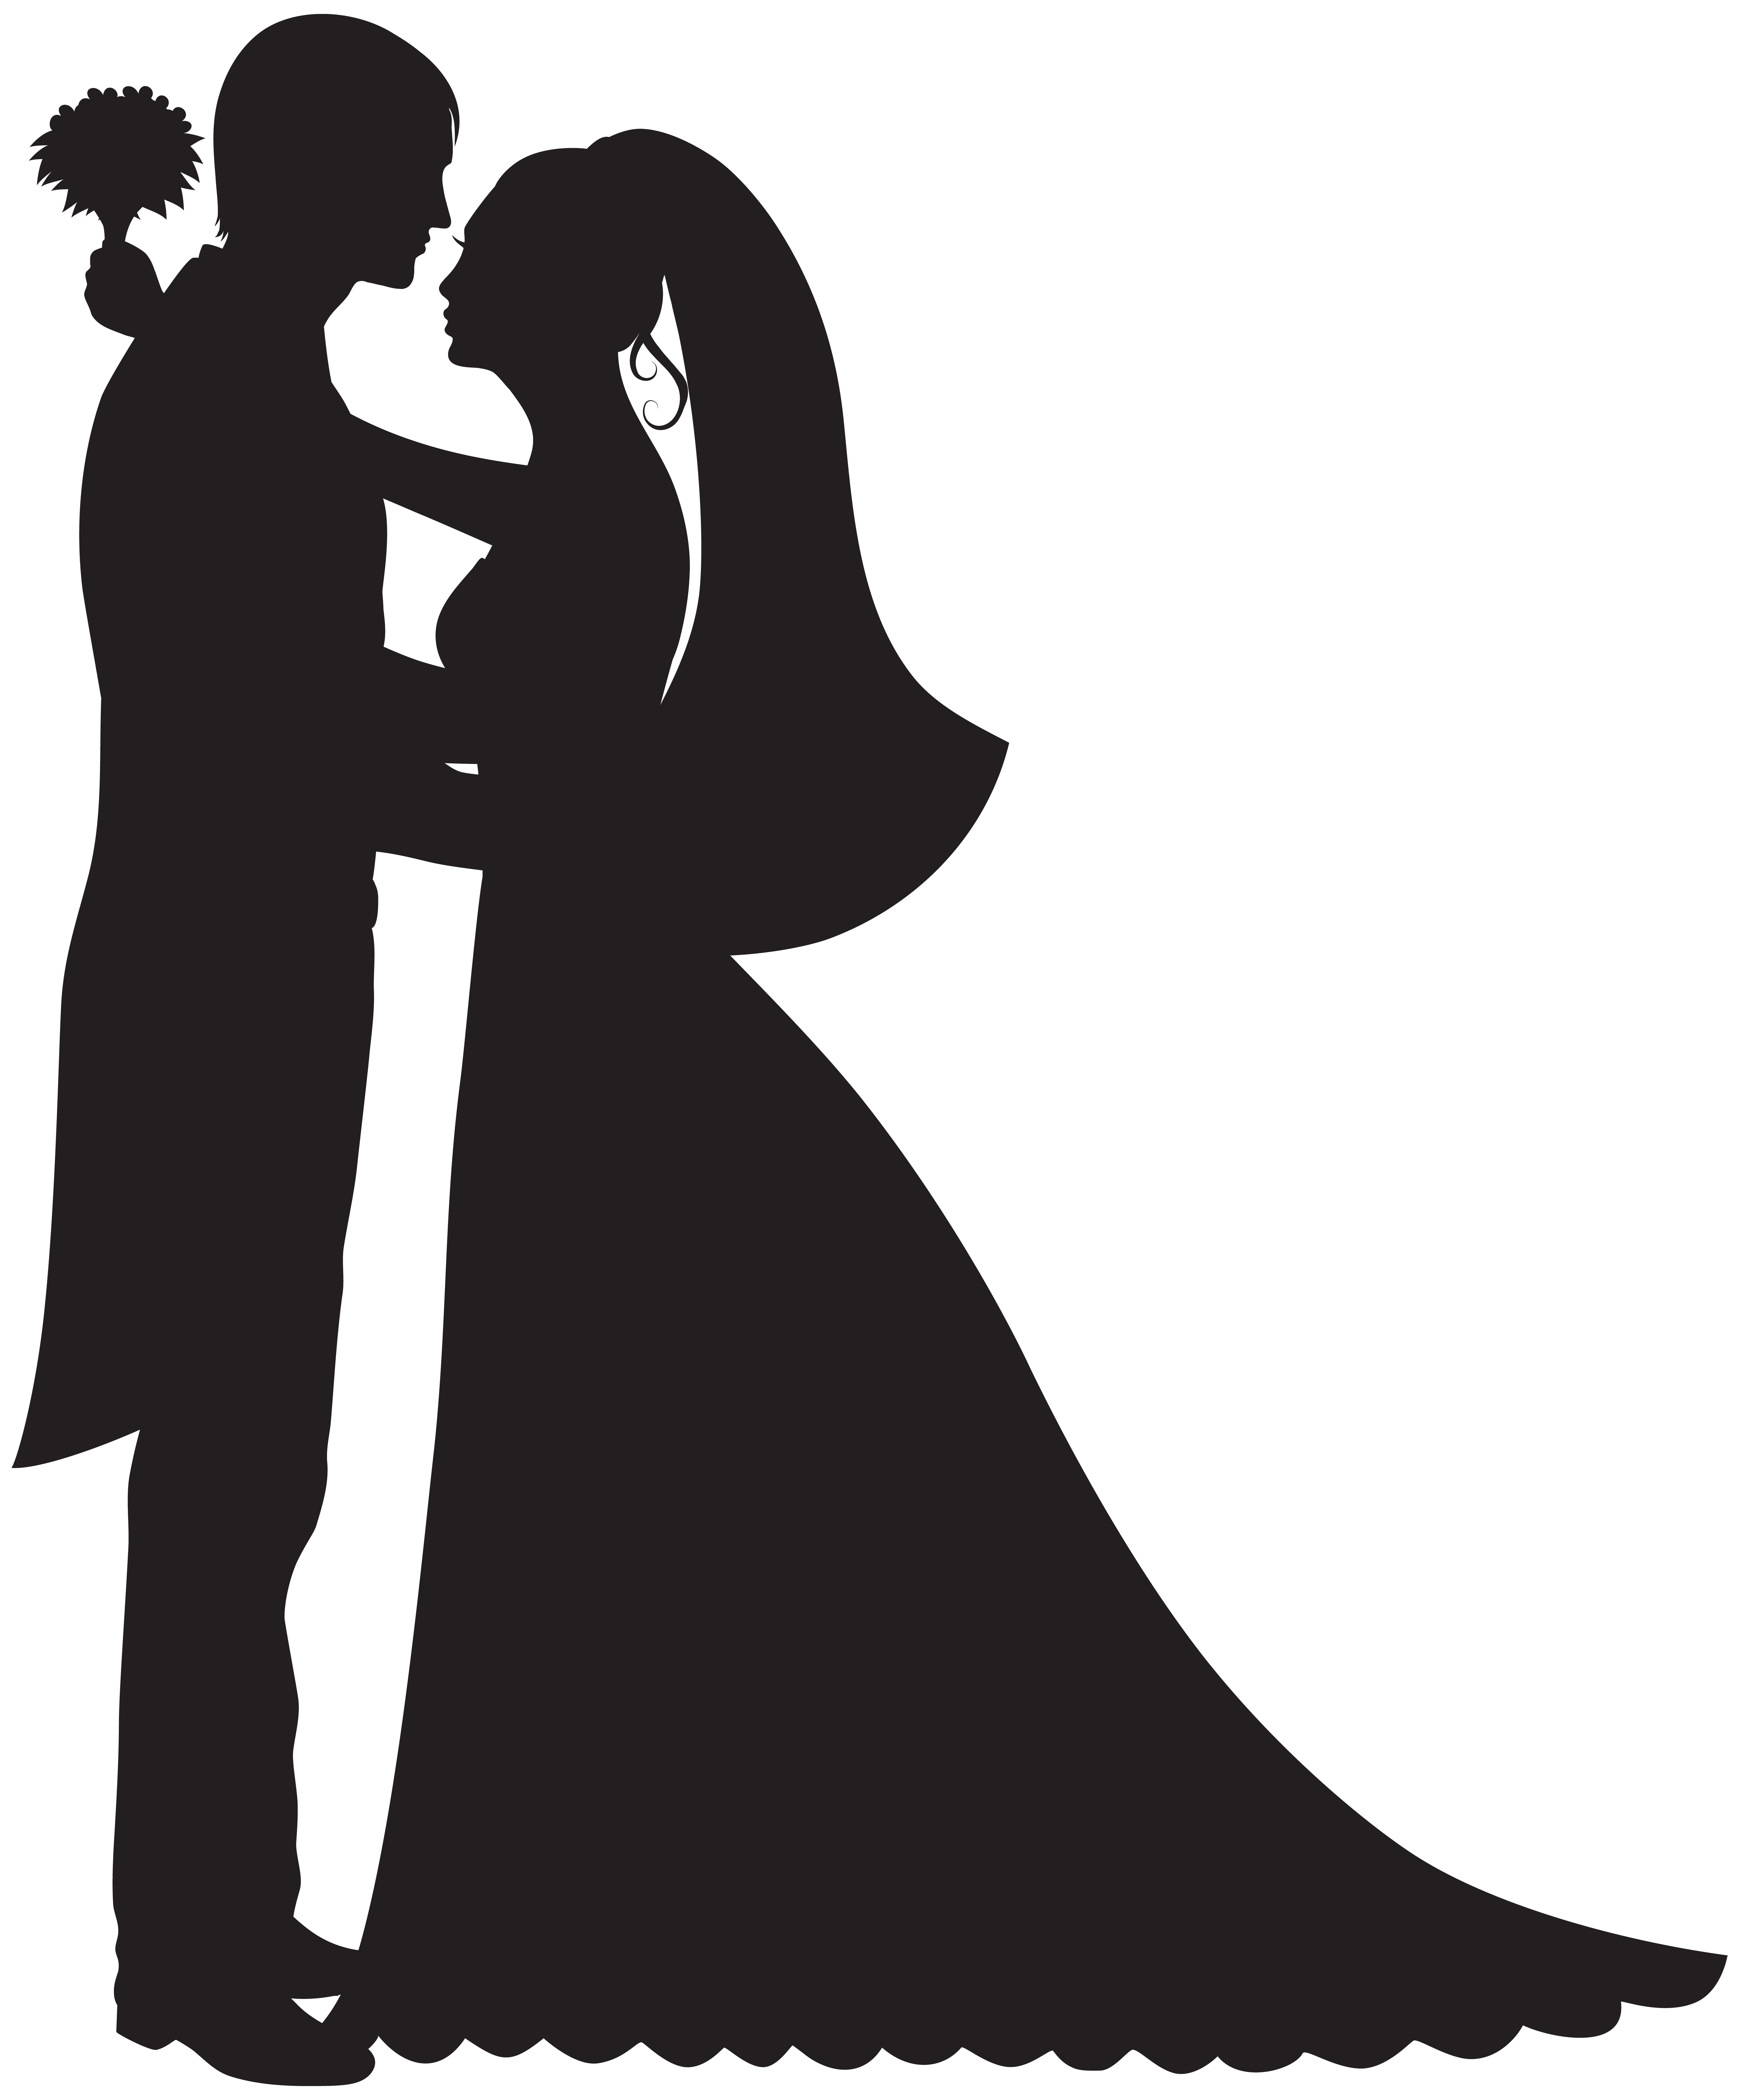 bride silhouette clip art at getdrawings com free for personal use rh getdrawings com dog groomer clipart clipart groom and bride